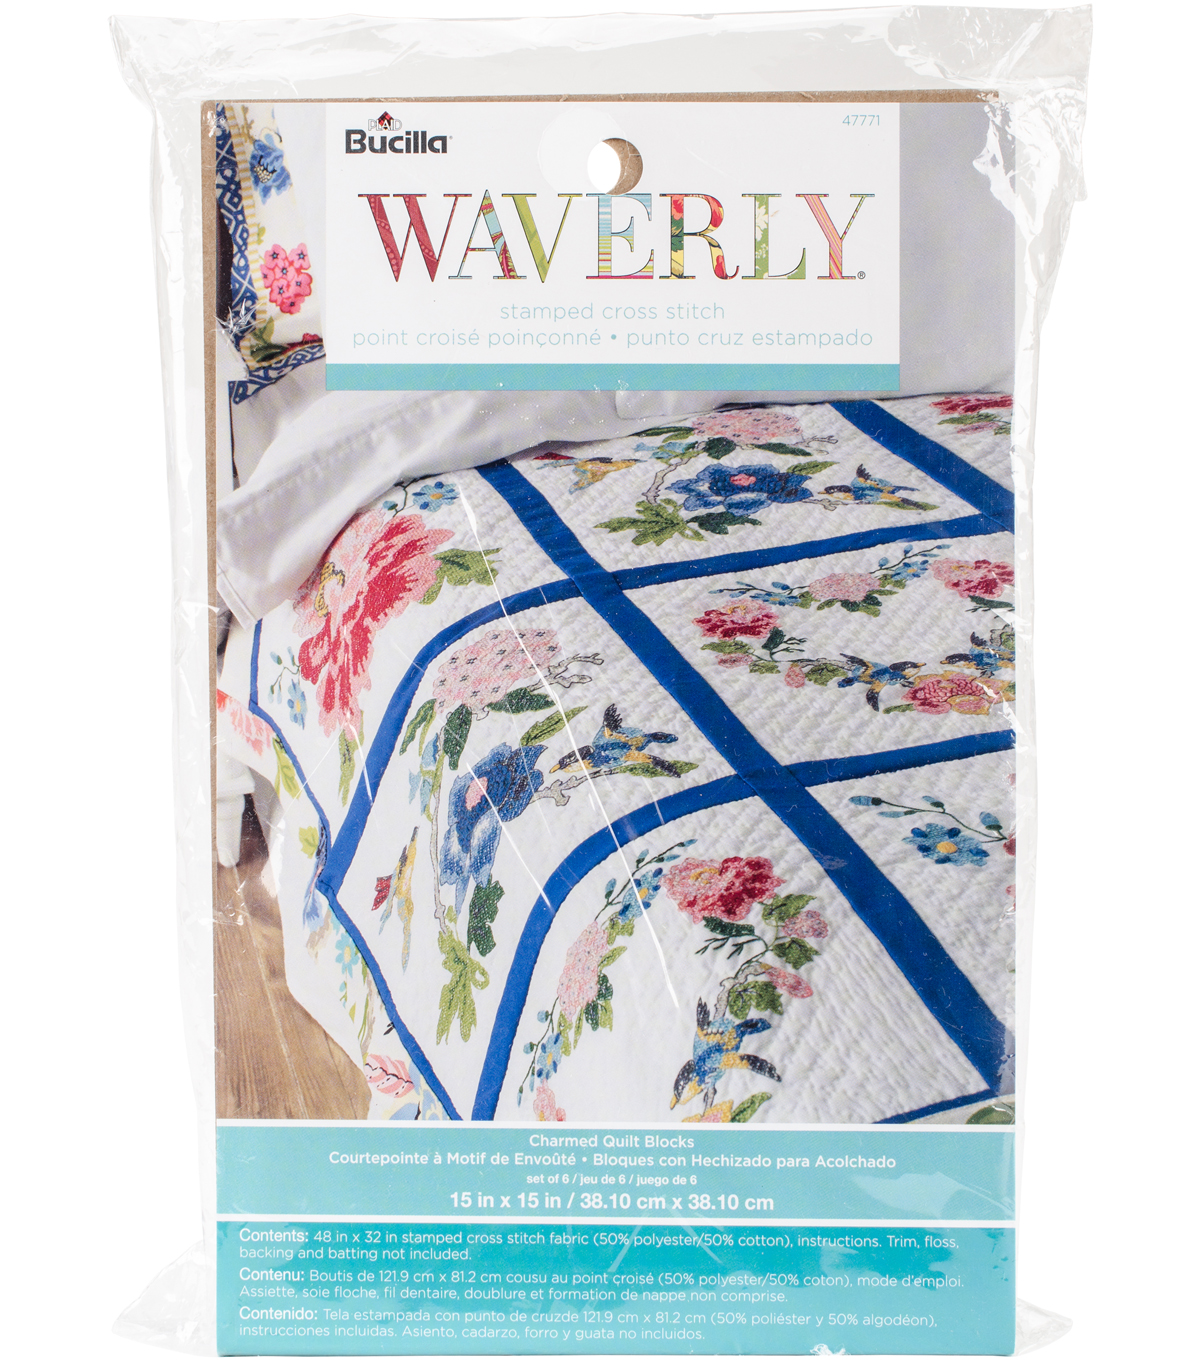 Stamped Embroidery Quilt Blocks 15x15 6 Pack Waverly Charmed Joann